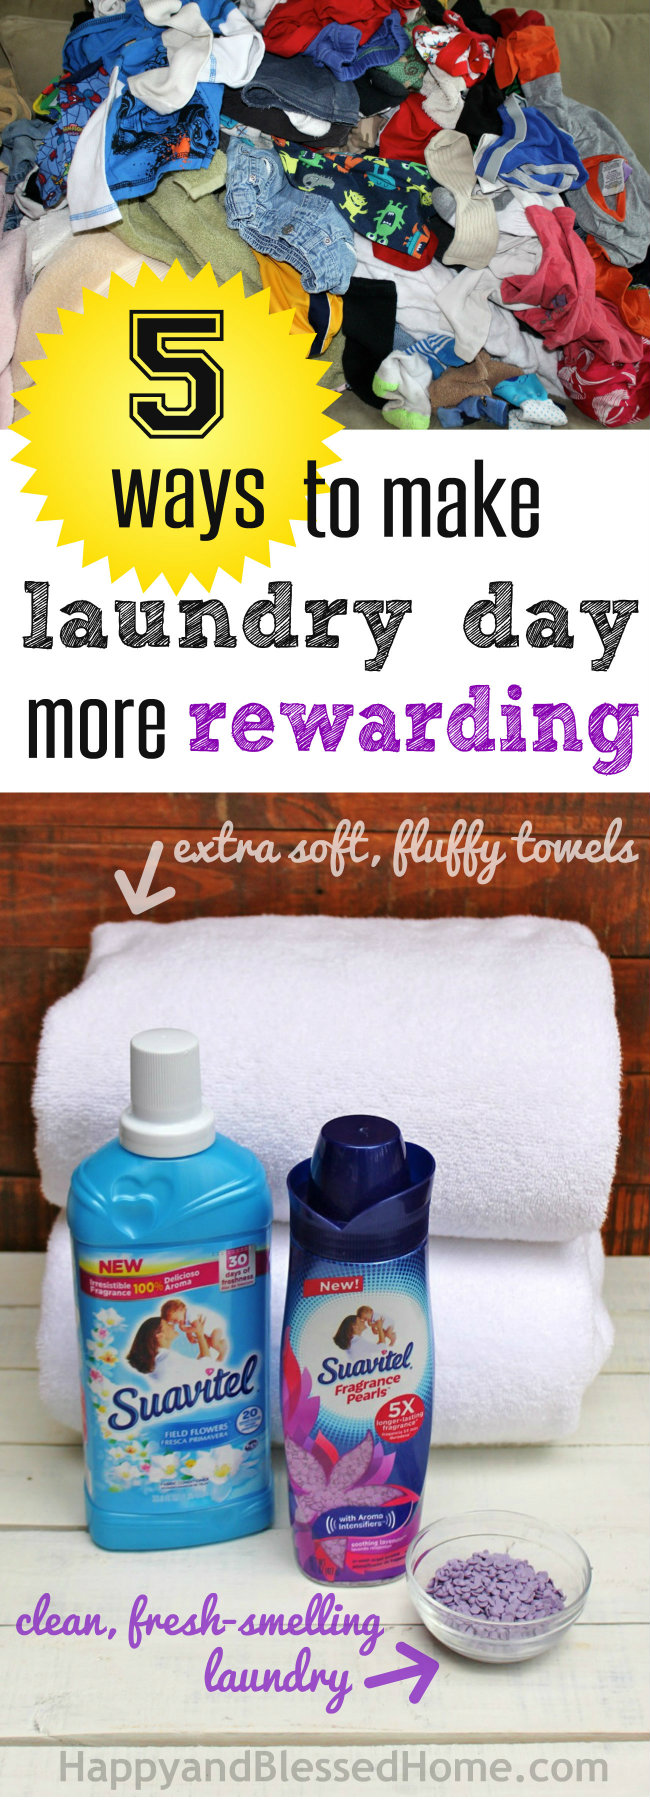 5 Ways to Make Laundry Day More rewarding with soft towels and clean smelling clothes with Suavitel by HappyandBlessedHome.com